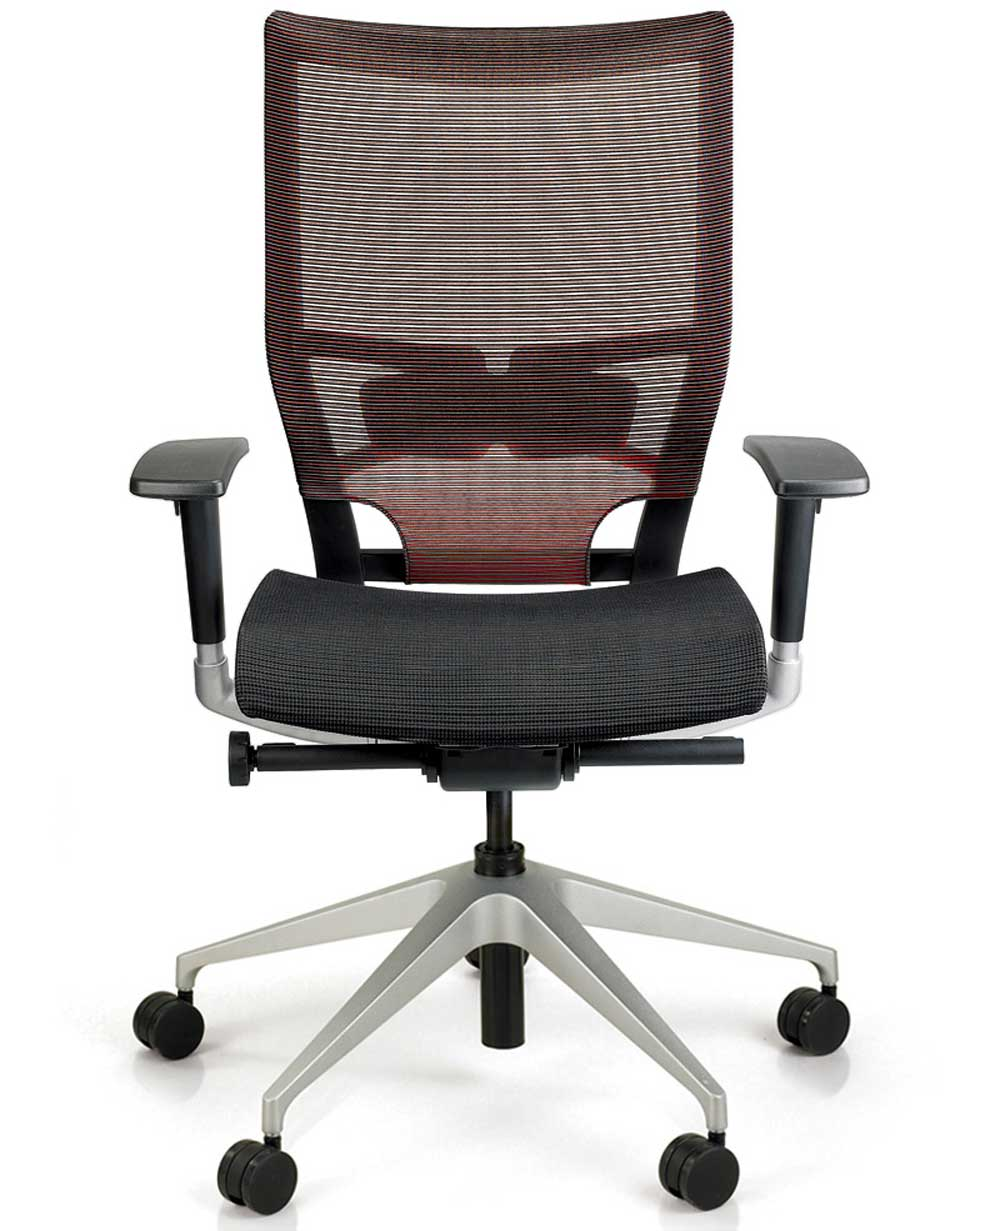 Eurotech NUVO Executive Adjustable Mesh Office Chair